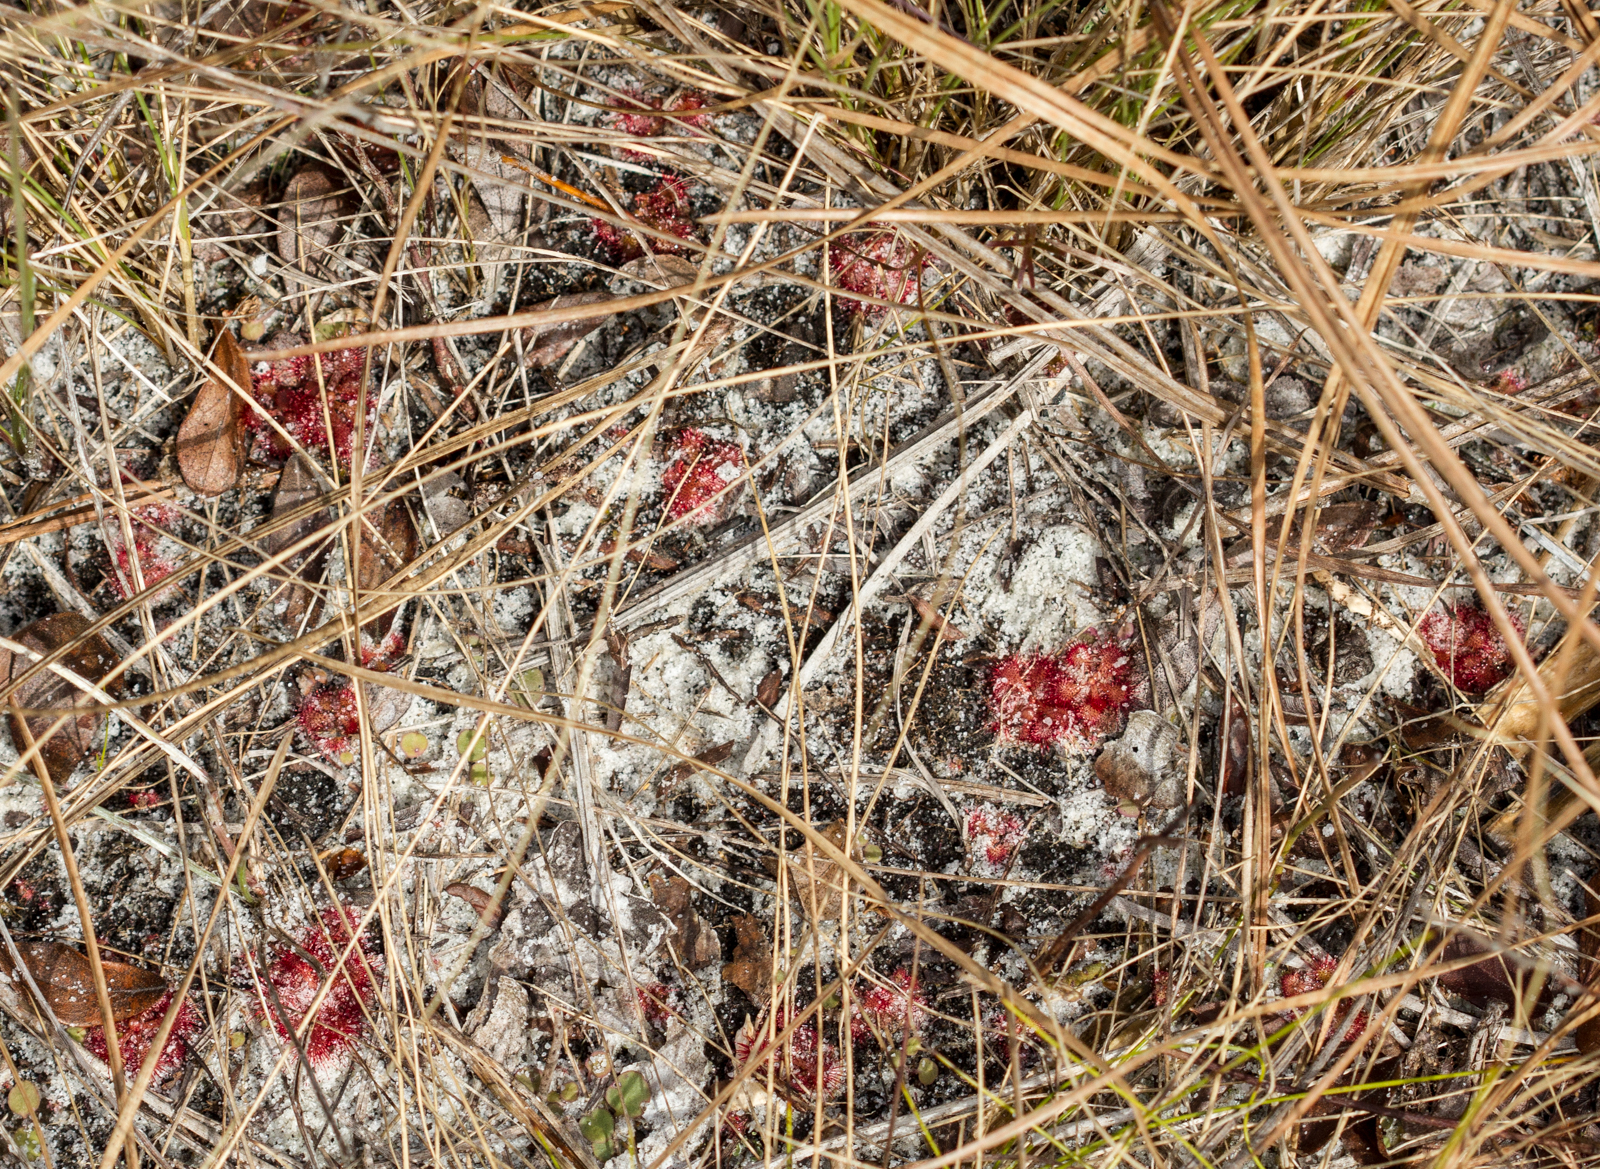 Sandy soil with small, red sundew plants